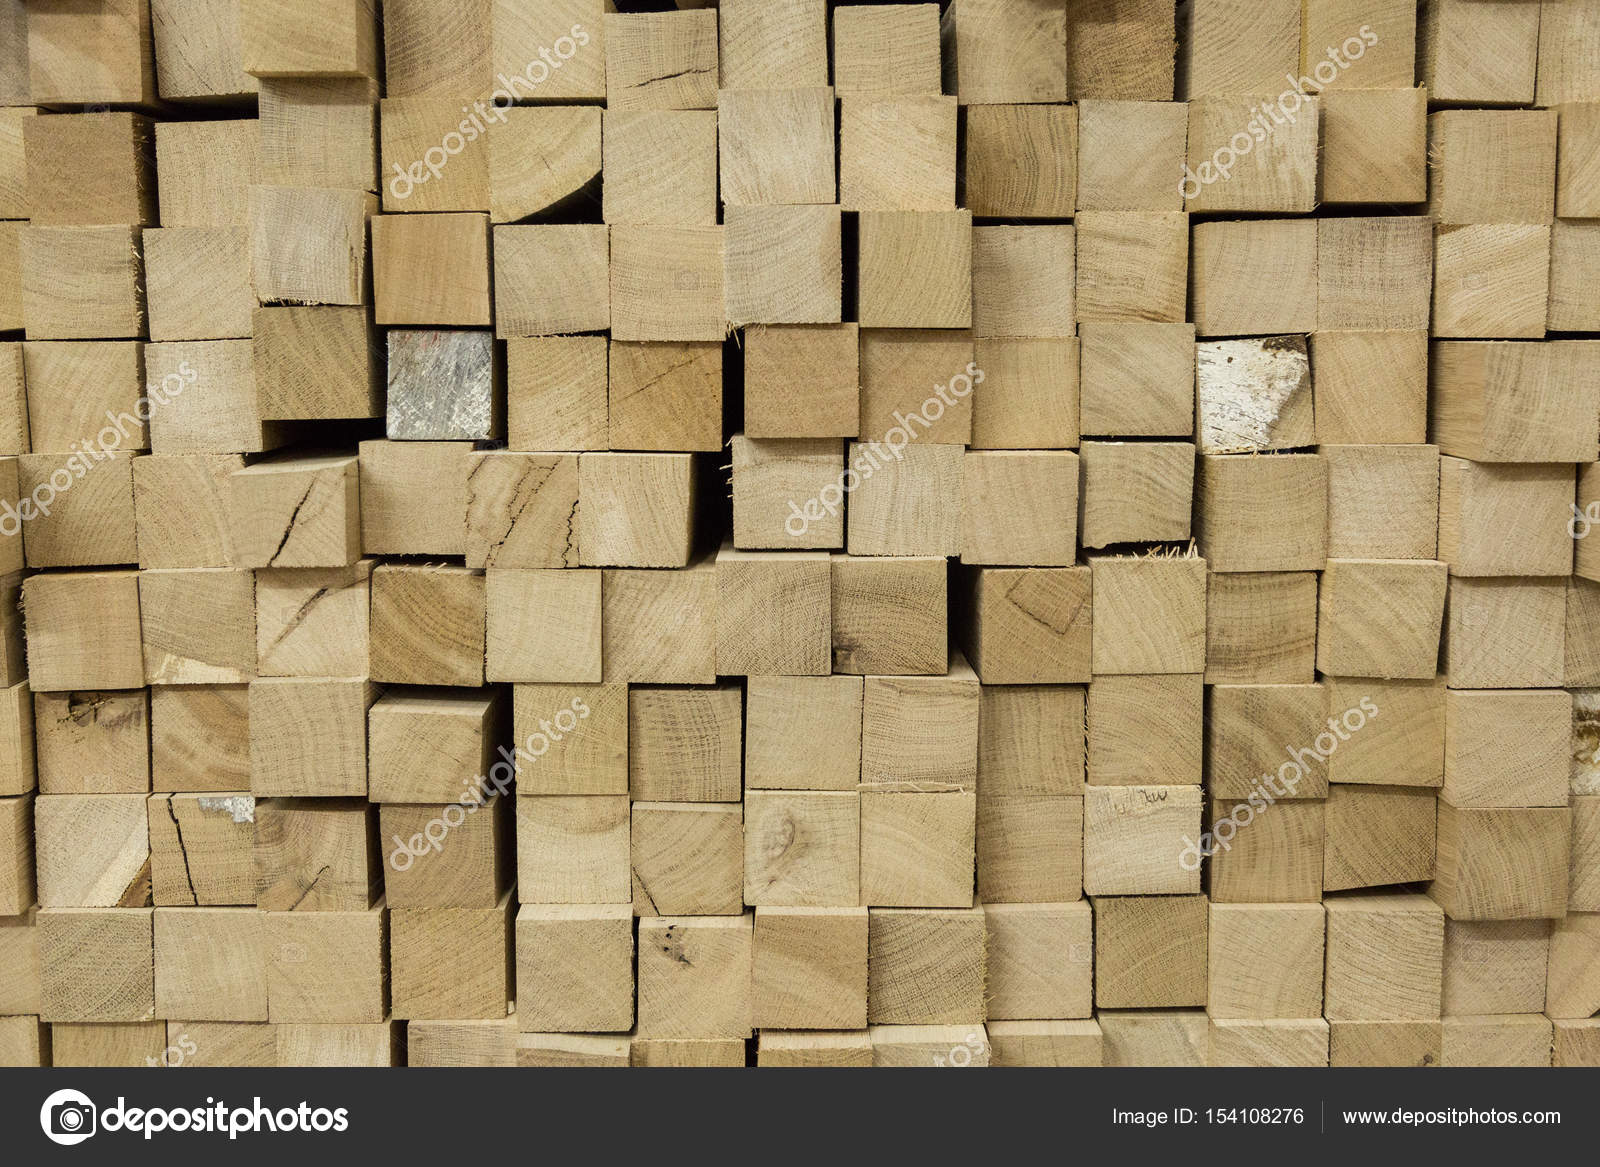 Heap of wooden bricks — Stock Photo © fotoevent stock #154108276